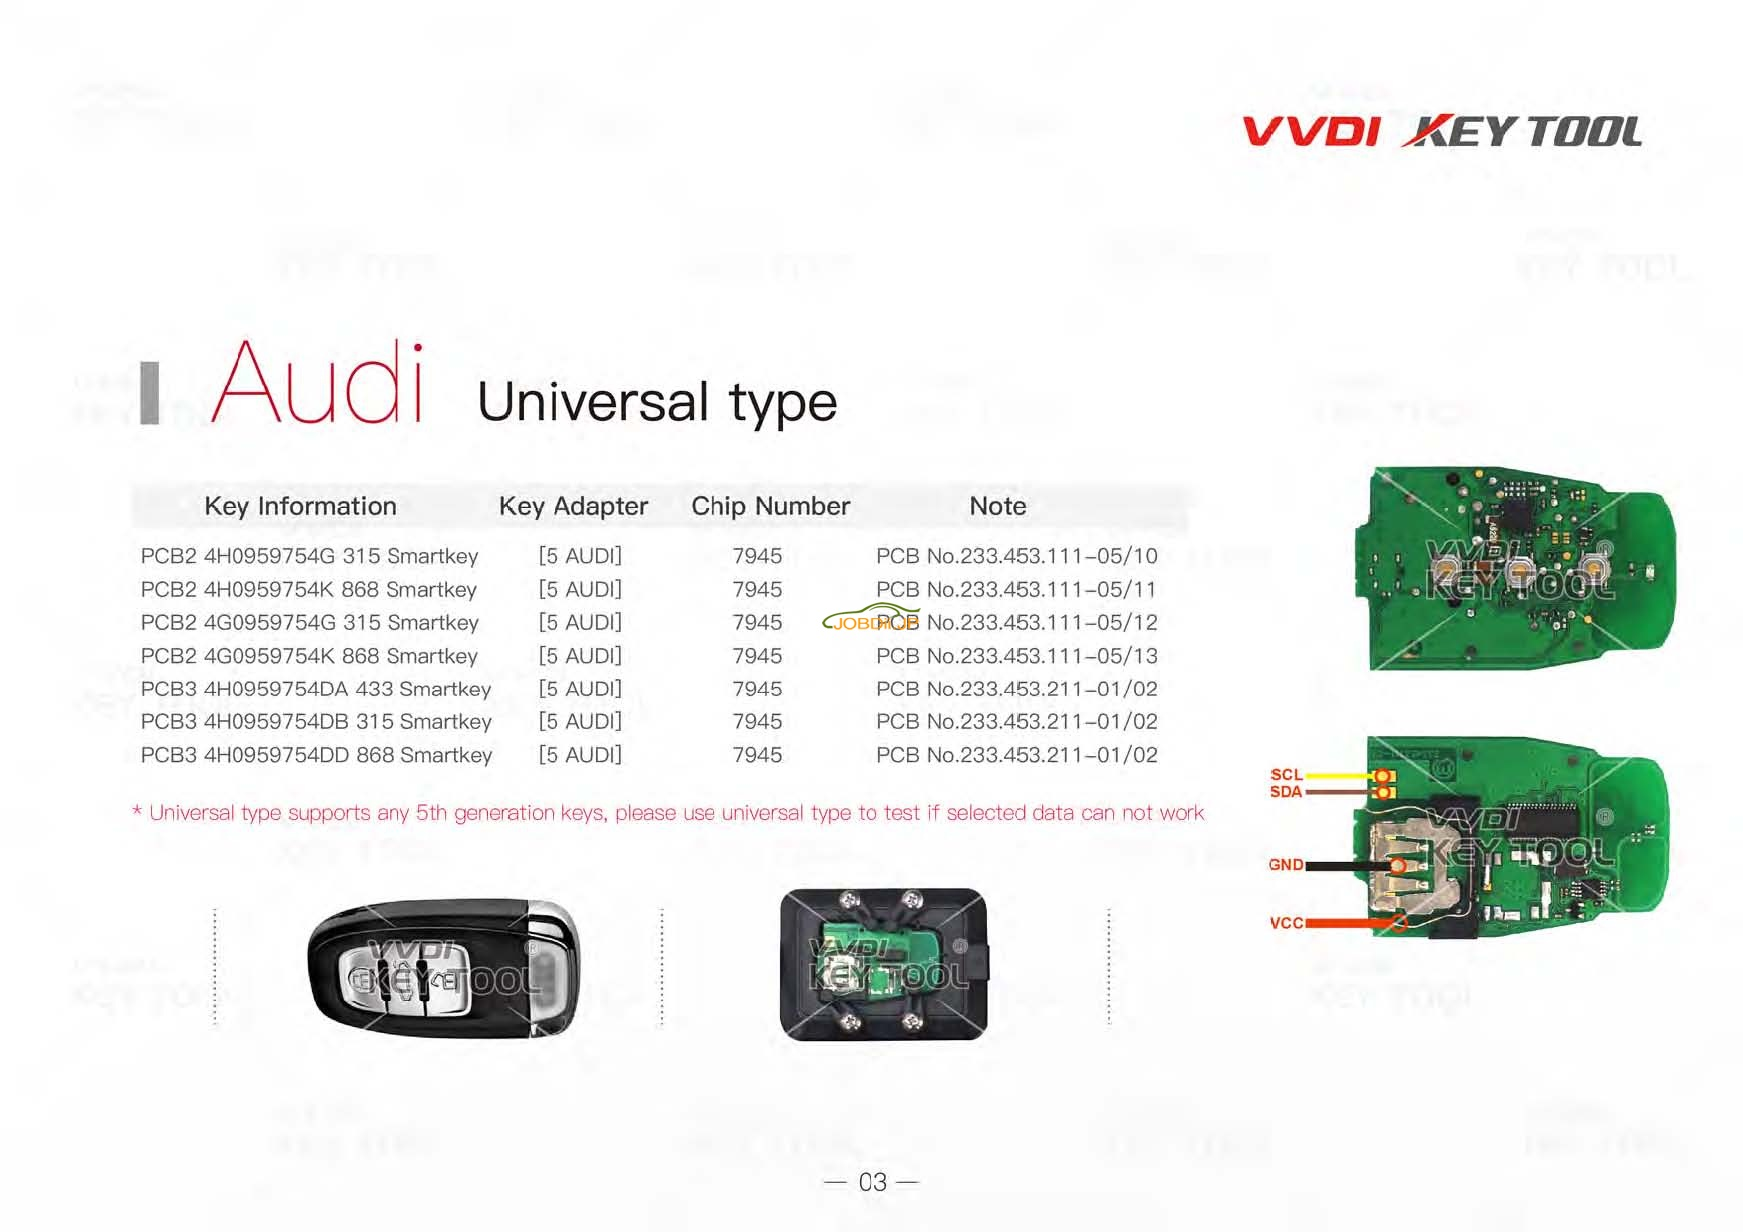 vvdi-key-tool-renew-diagram-03